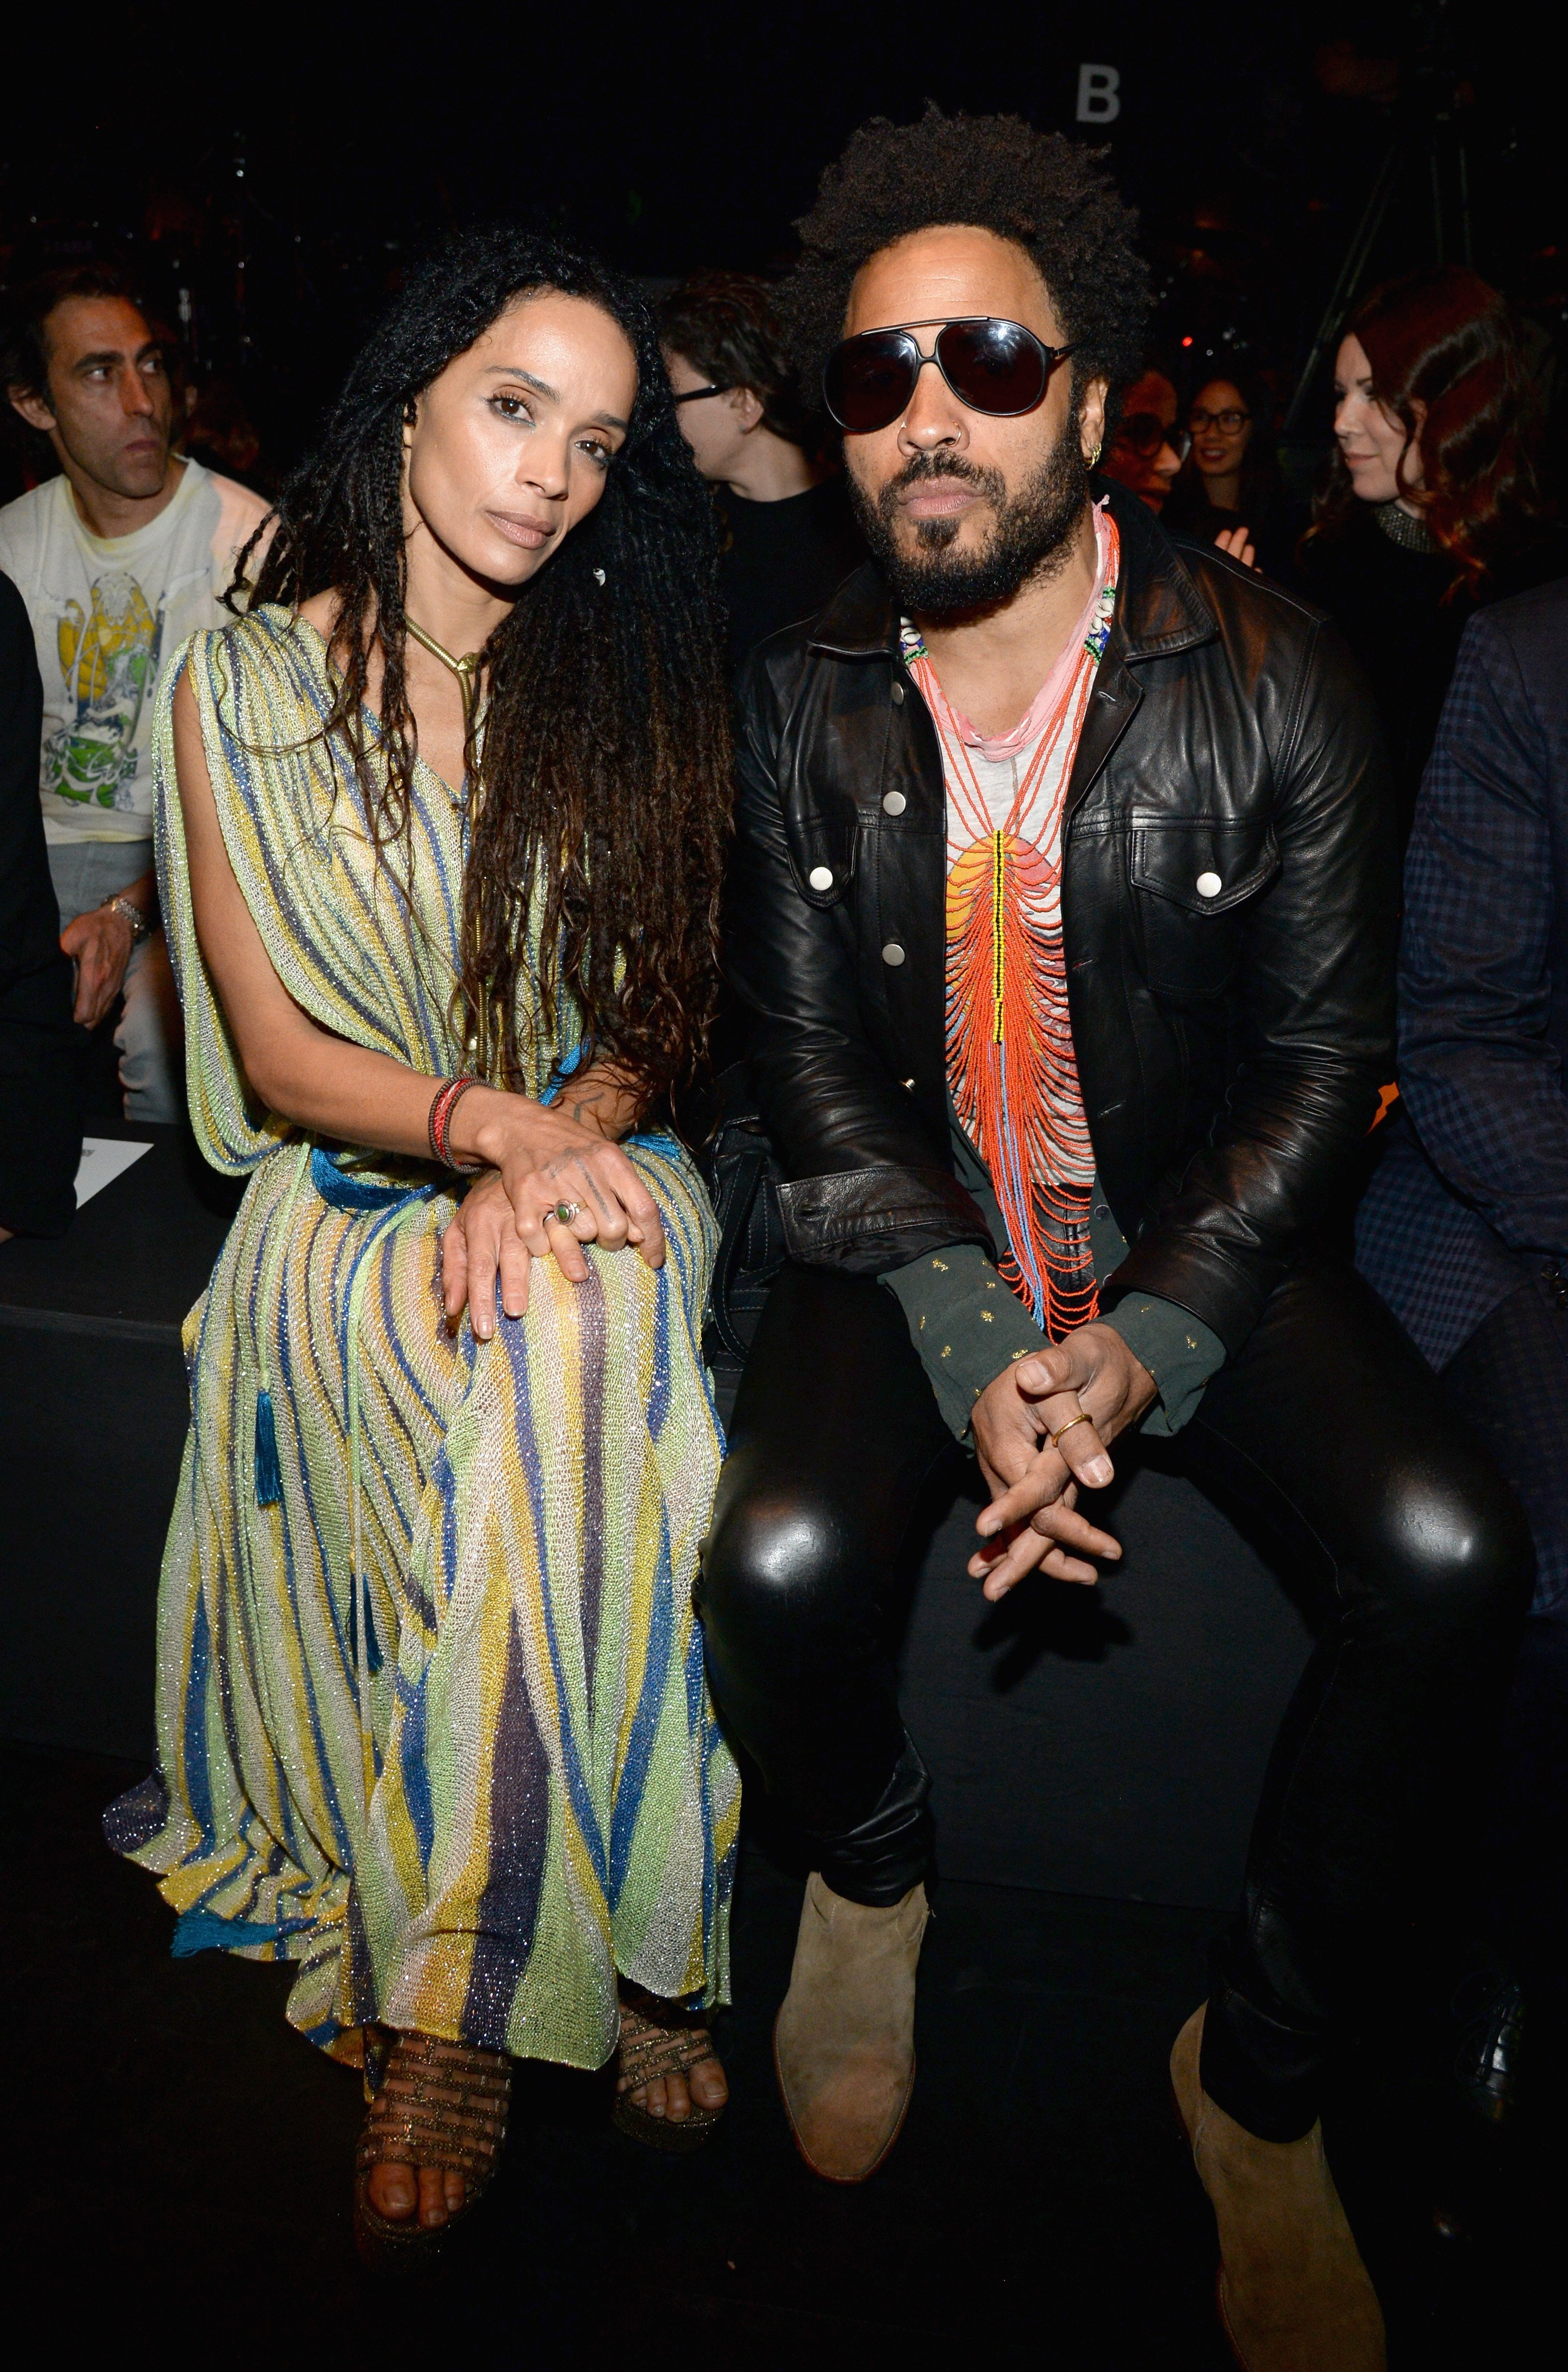 Lisa Bonet and Lenny Kravitz attend Saint Laurent at the Palladium on February 10, 2016 | Photo: GettyImages